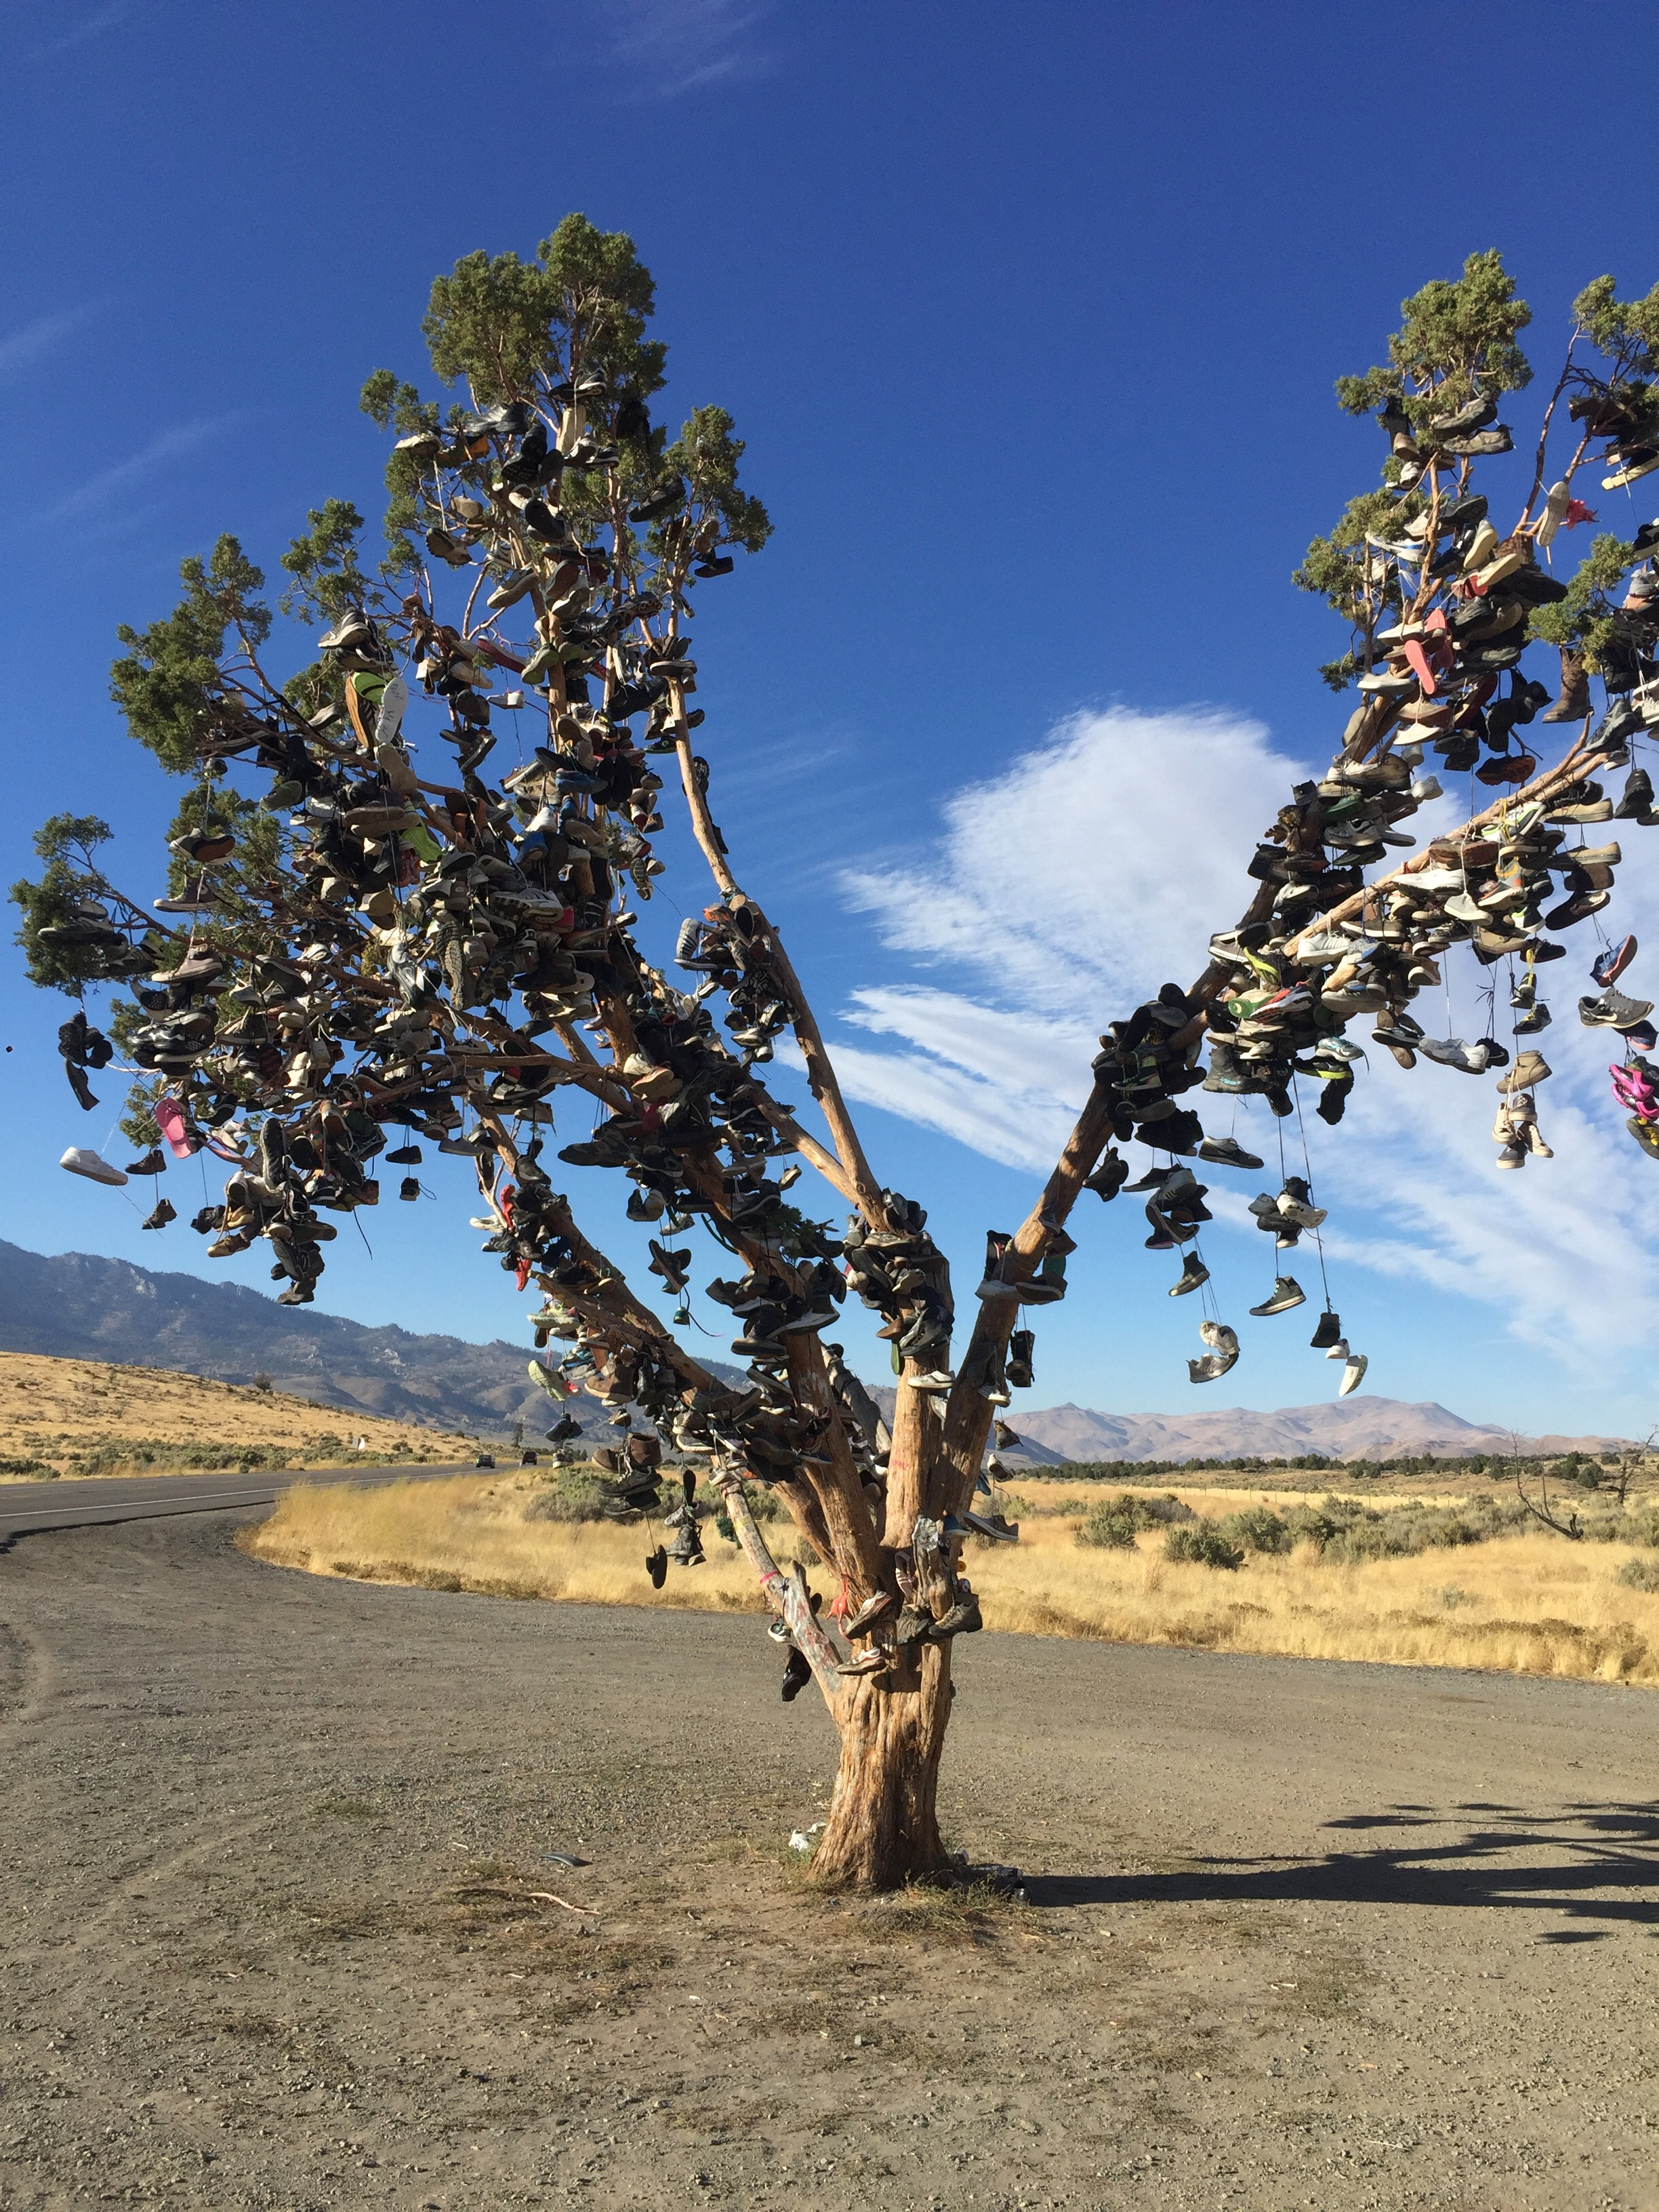 I had no idea this was a Sneaker Tree until I pulled over to park and take a quick nap. I was gobsmacked never knew such a thing existed. This is in Doyle California. One of many I'm told.